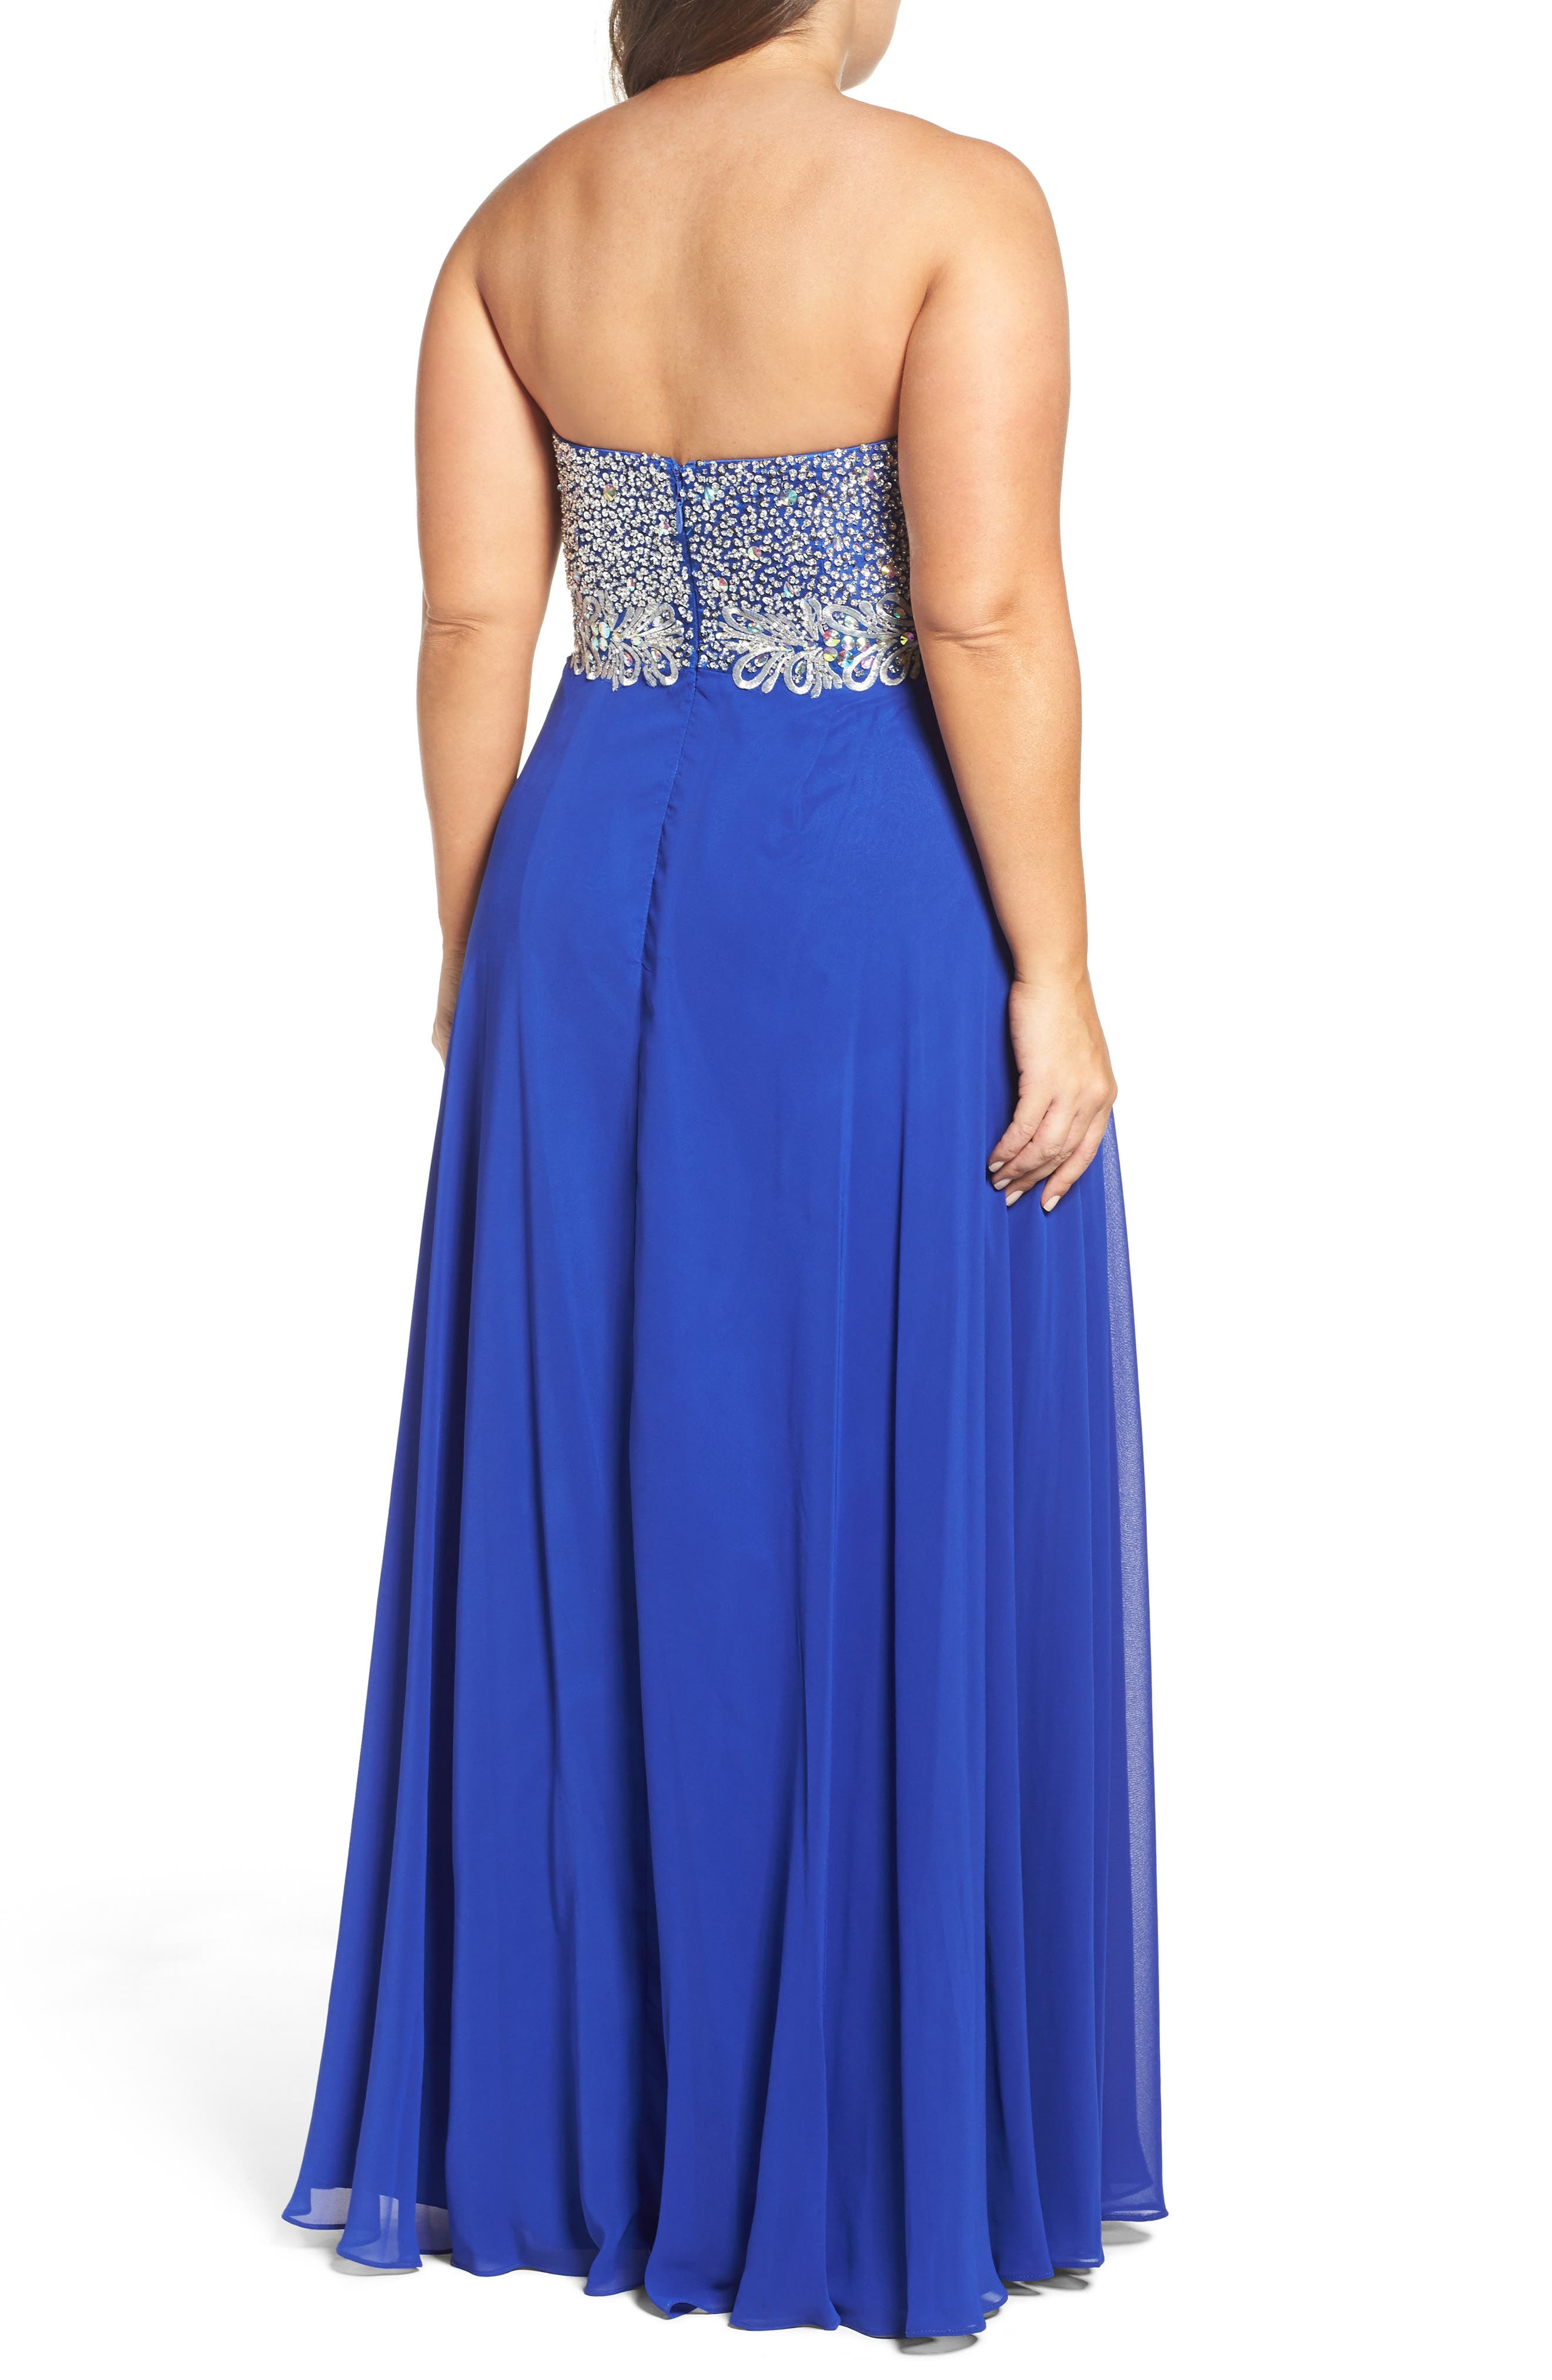 Embellished Strapless Gown,                             Alternate thumbnail 2, color,                             432